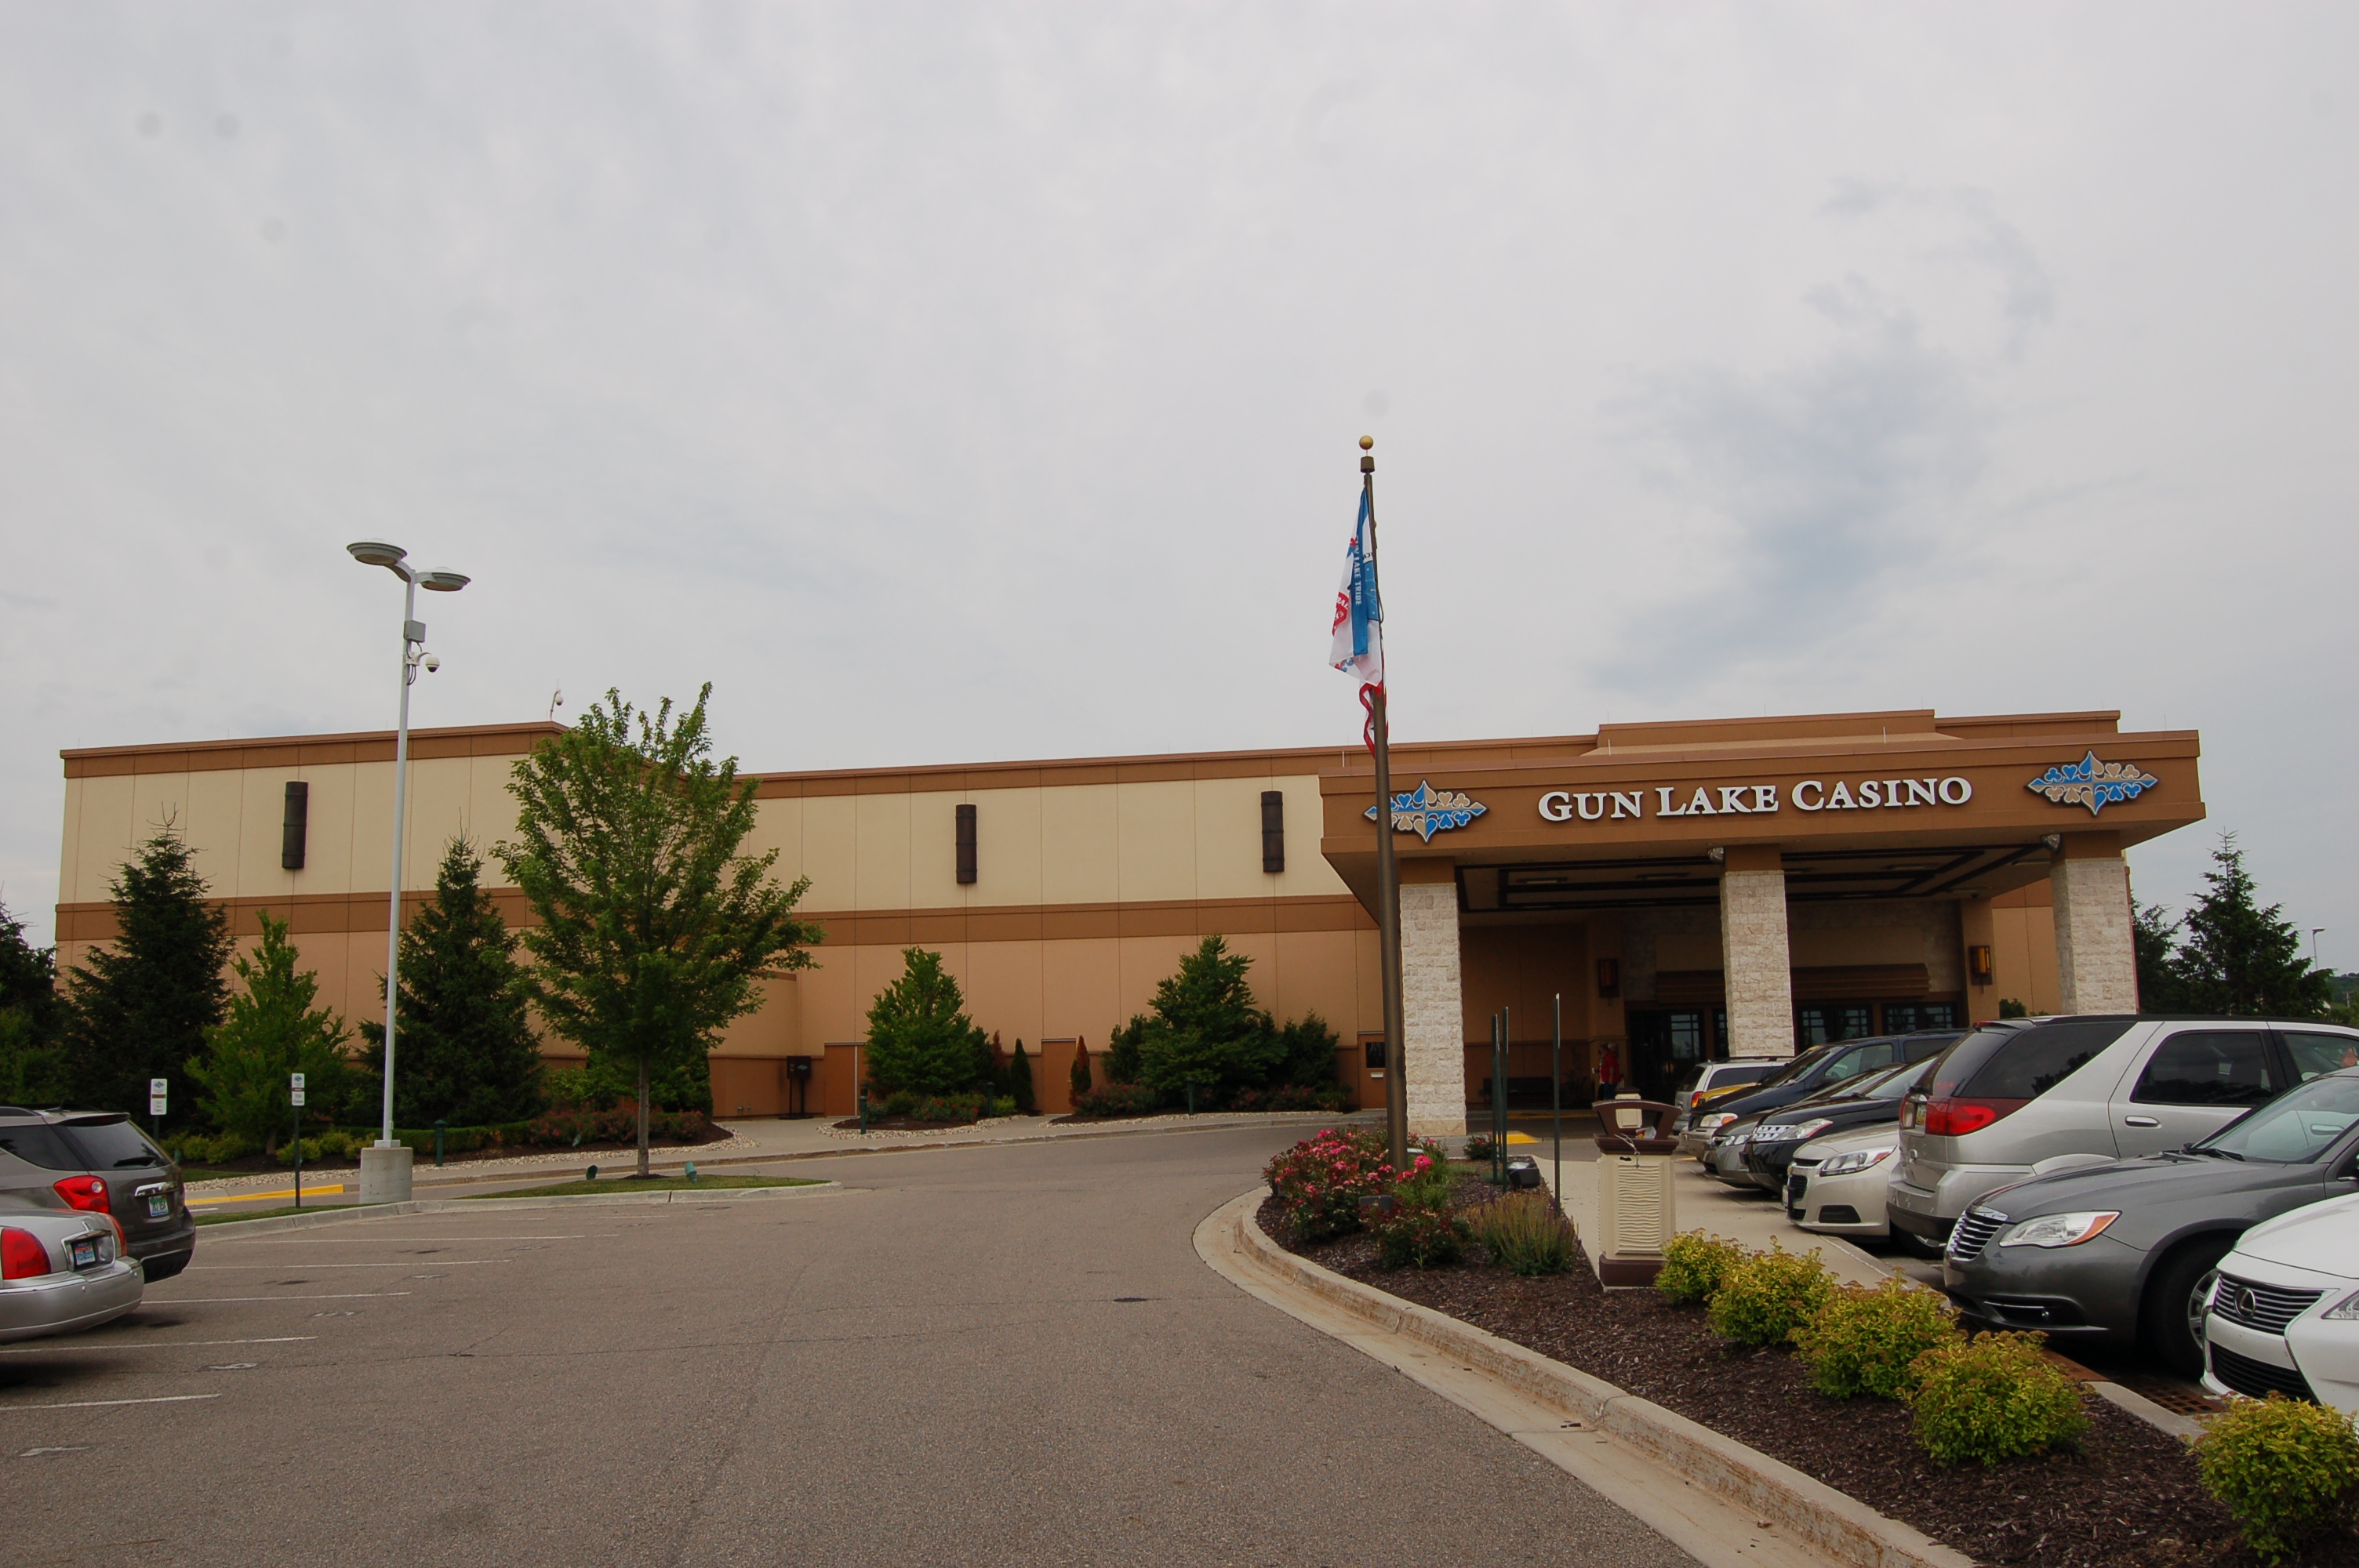 Gun lake casino employment center